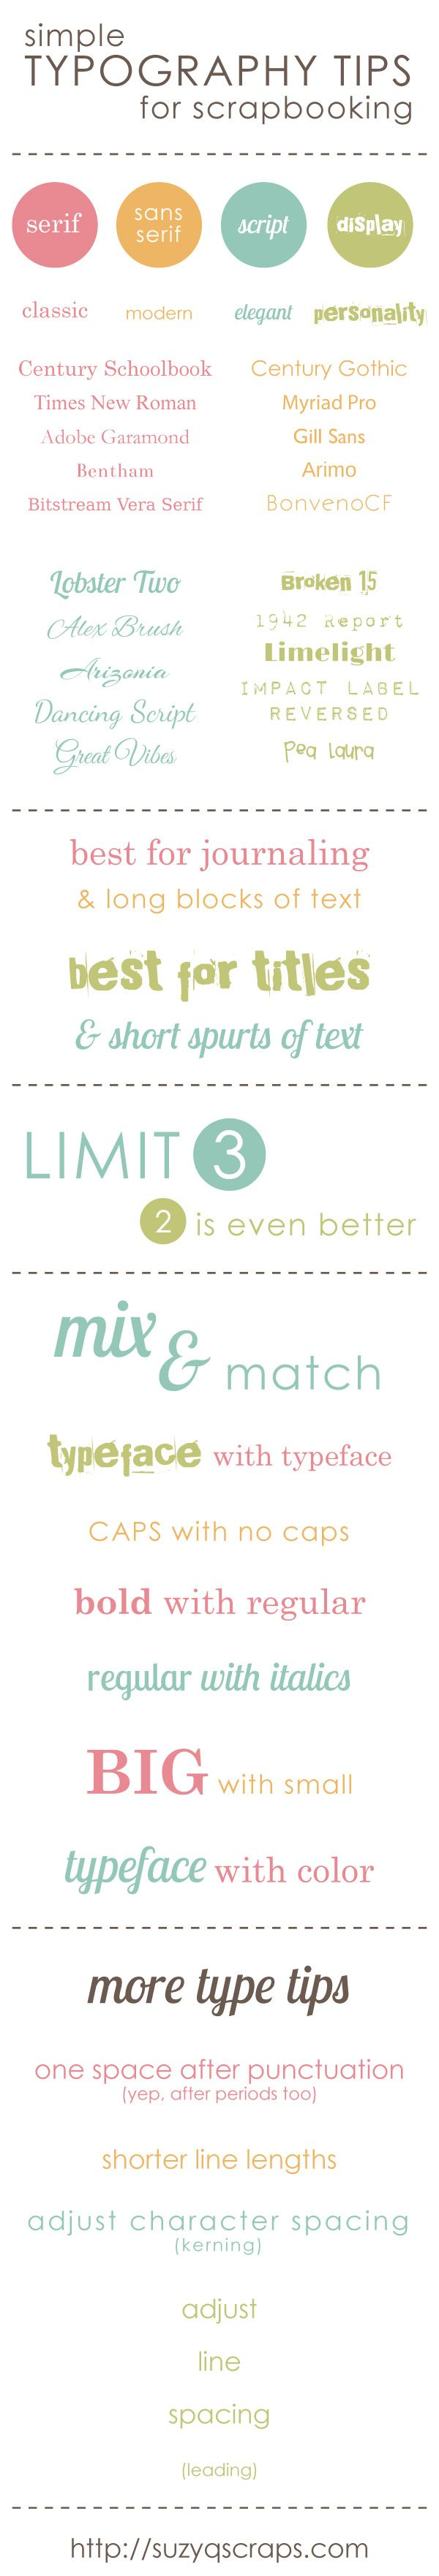 Simple Typography Tips for Scrapbooking | click here for links to the free fonts http://suzyqscraps.com/2013/06/26/simple-typography-tips-for-scrapbooking/